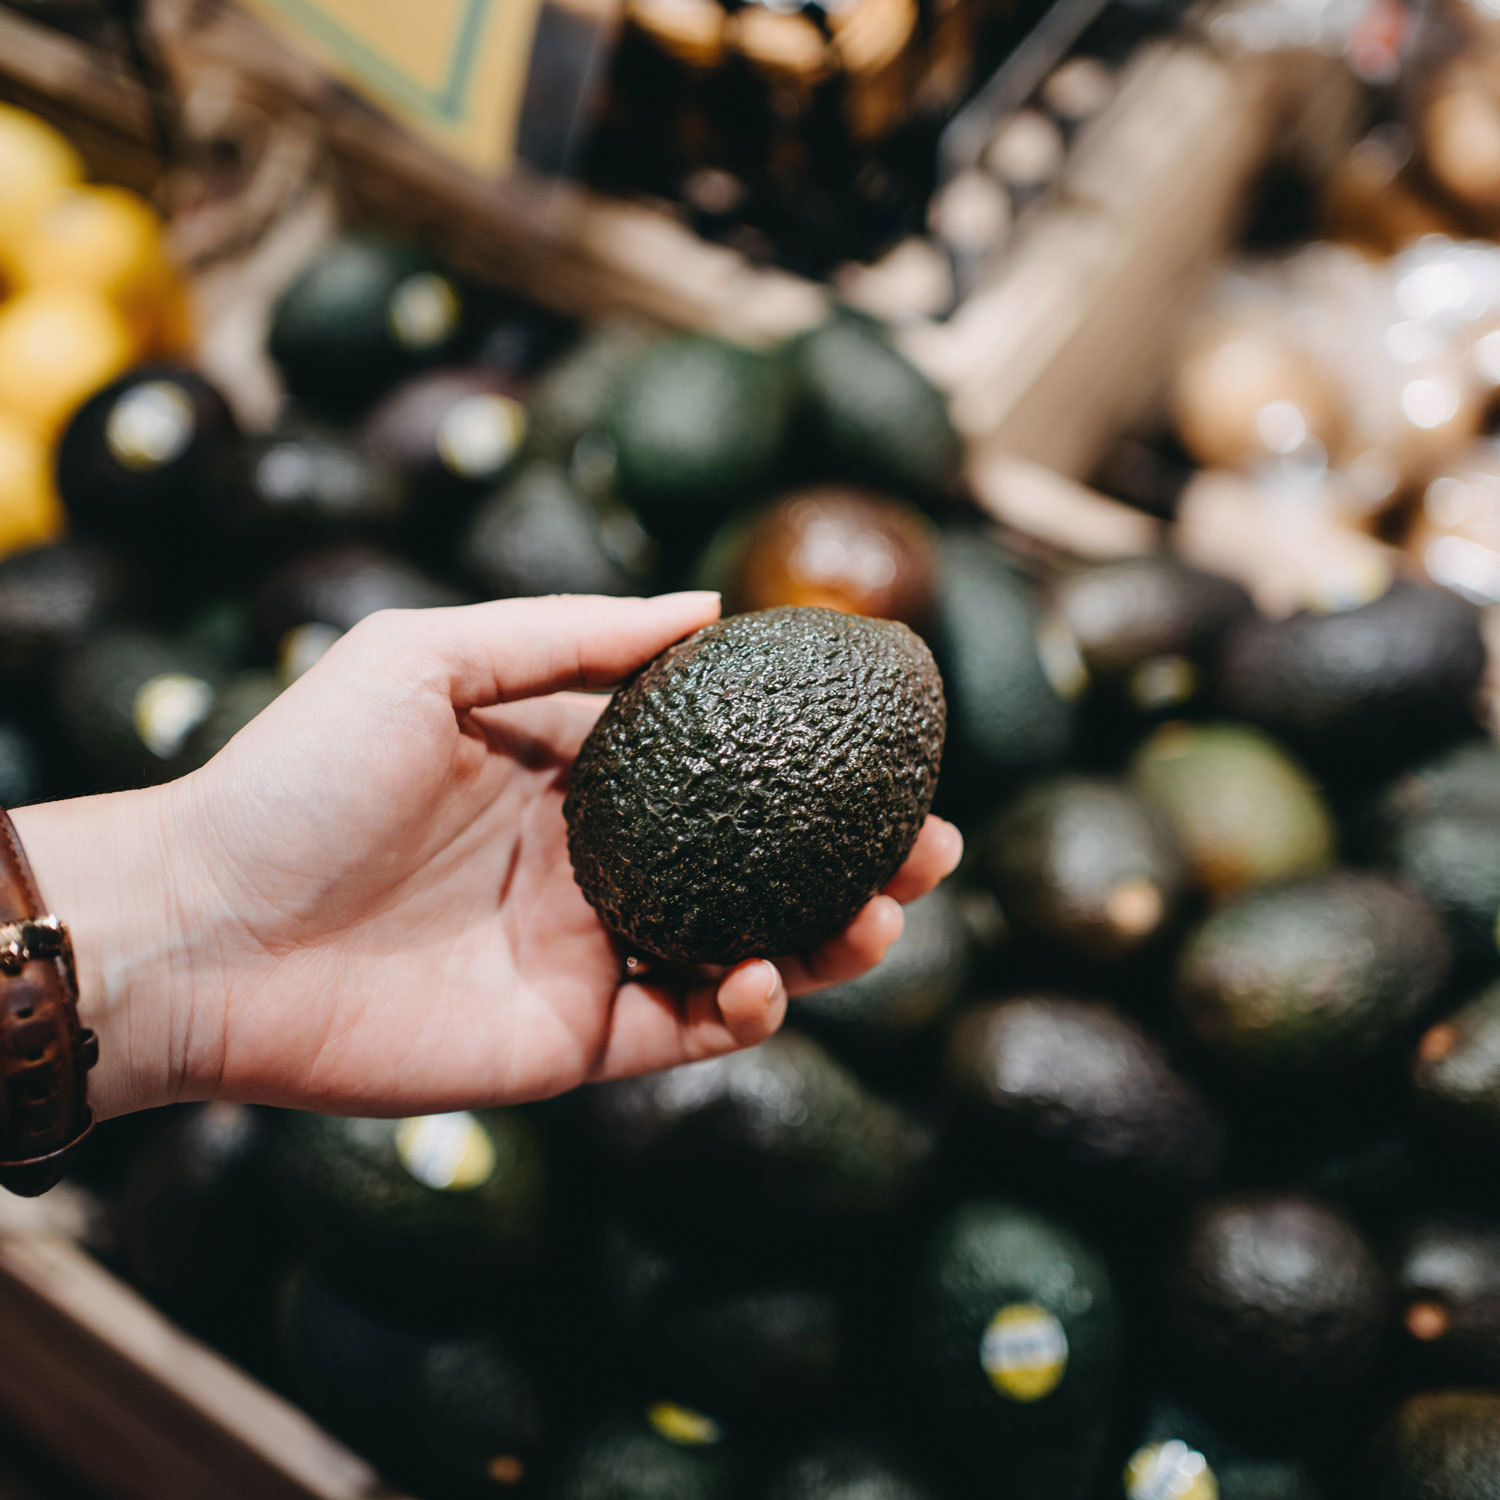 Hand holding an avocado